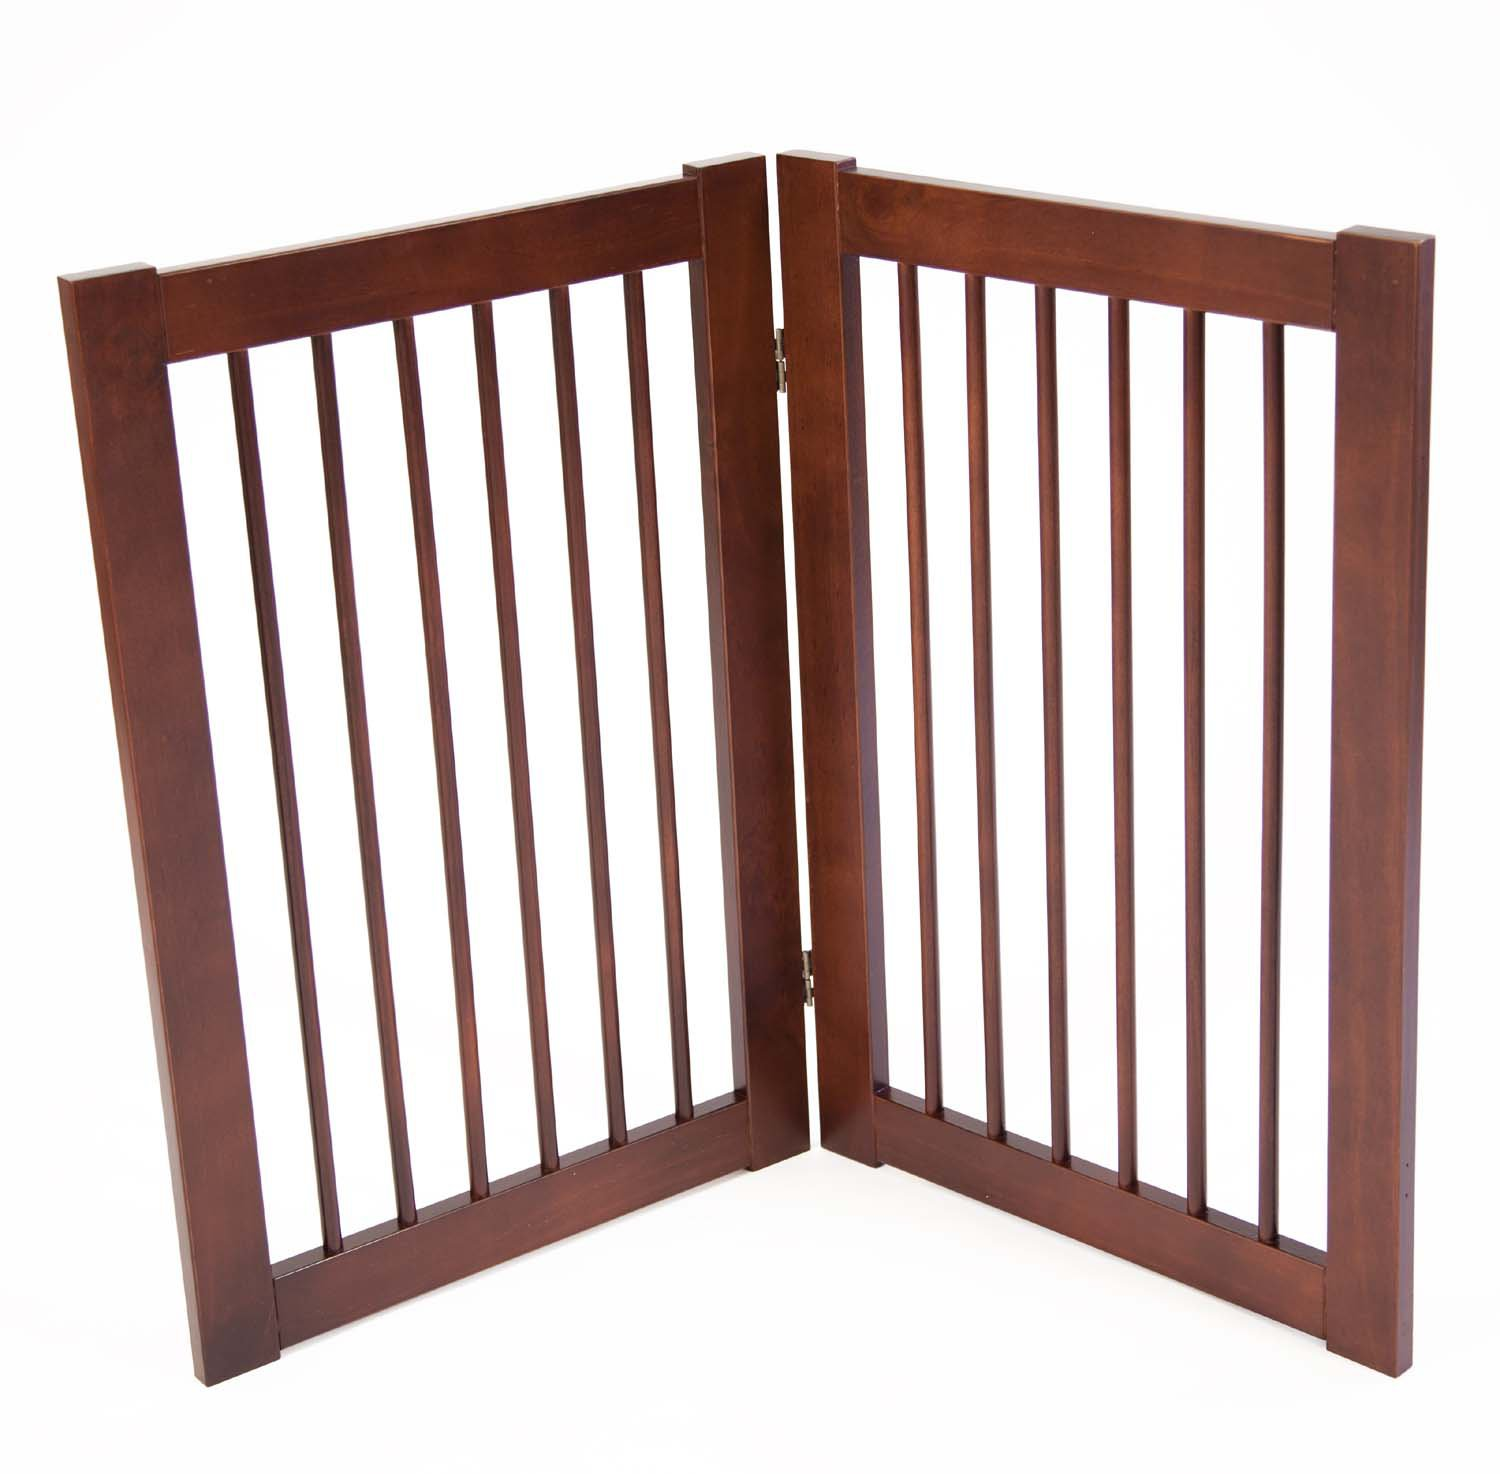 Dog pet gates tall wooden extra wide indoor dog gates petco primetime petz wood gate extension kit eventelaan Image collections